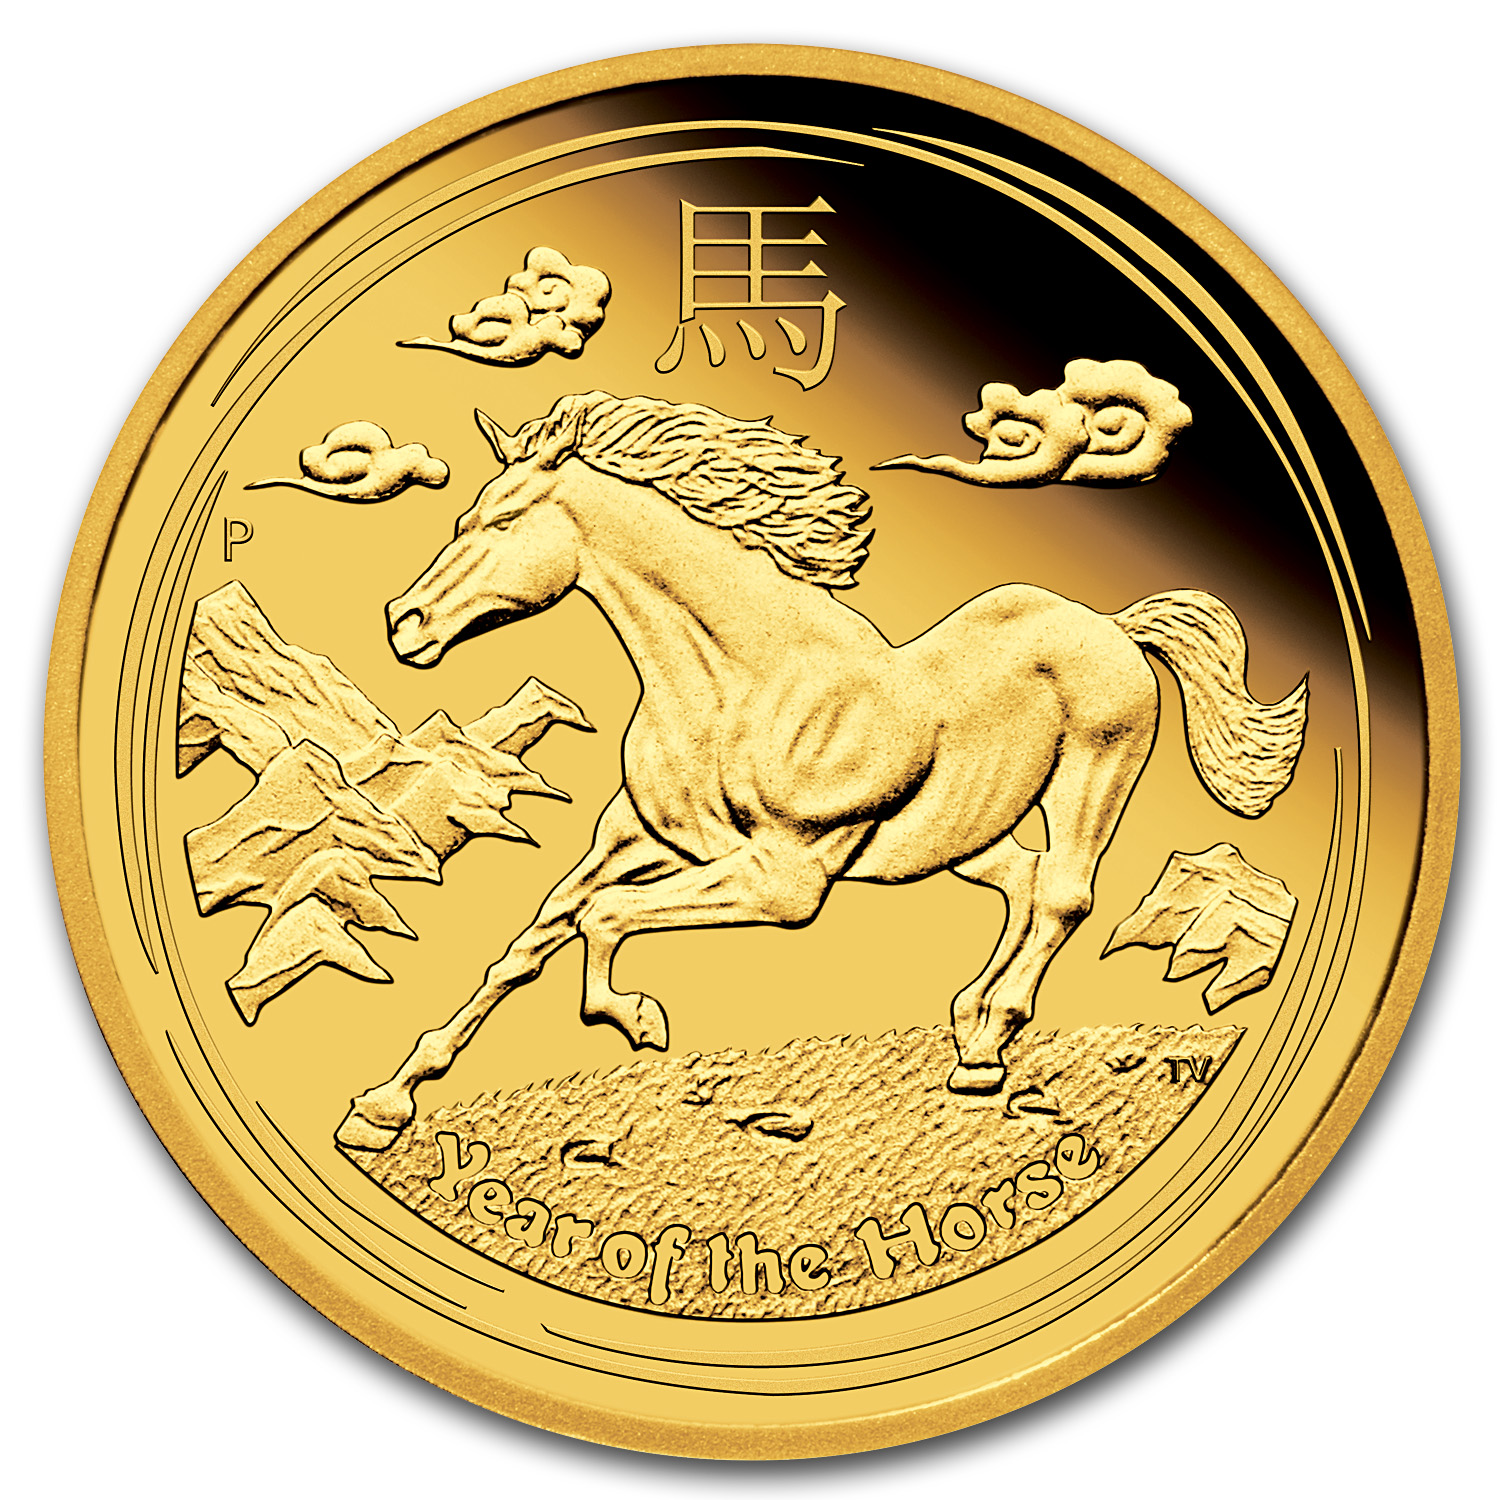 2014 Gold 1/4 oz Lunar Year of the Horse Proof (Series II)